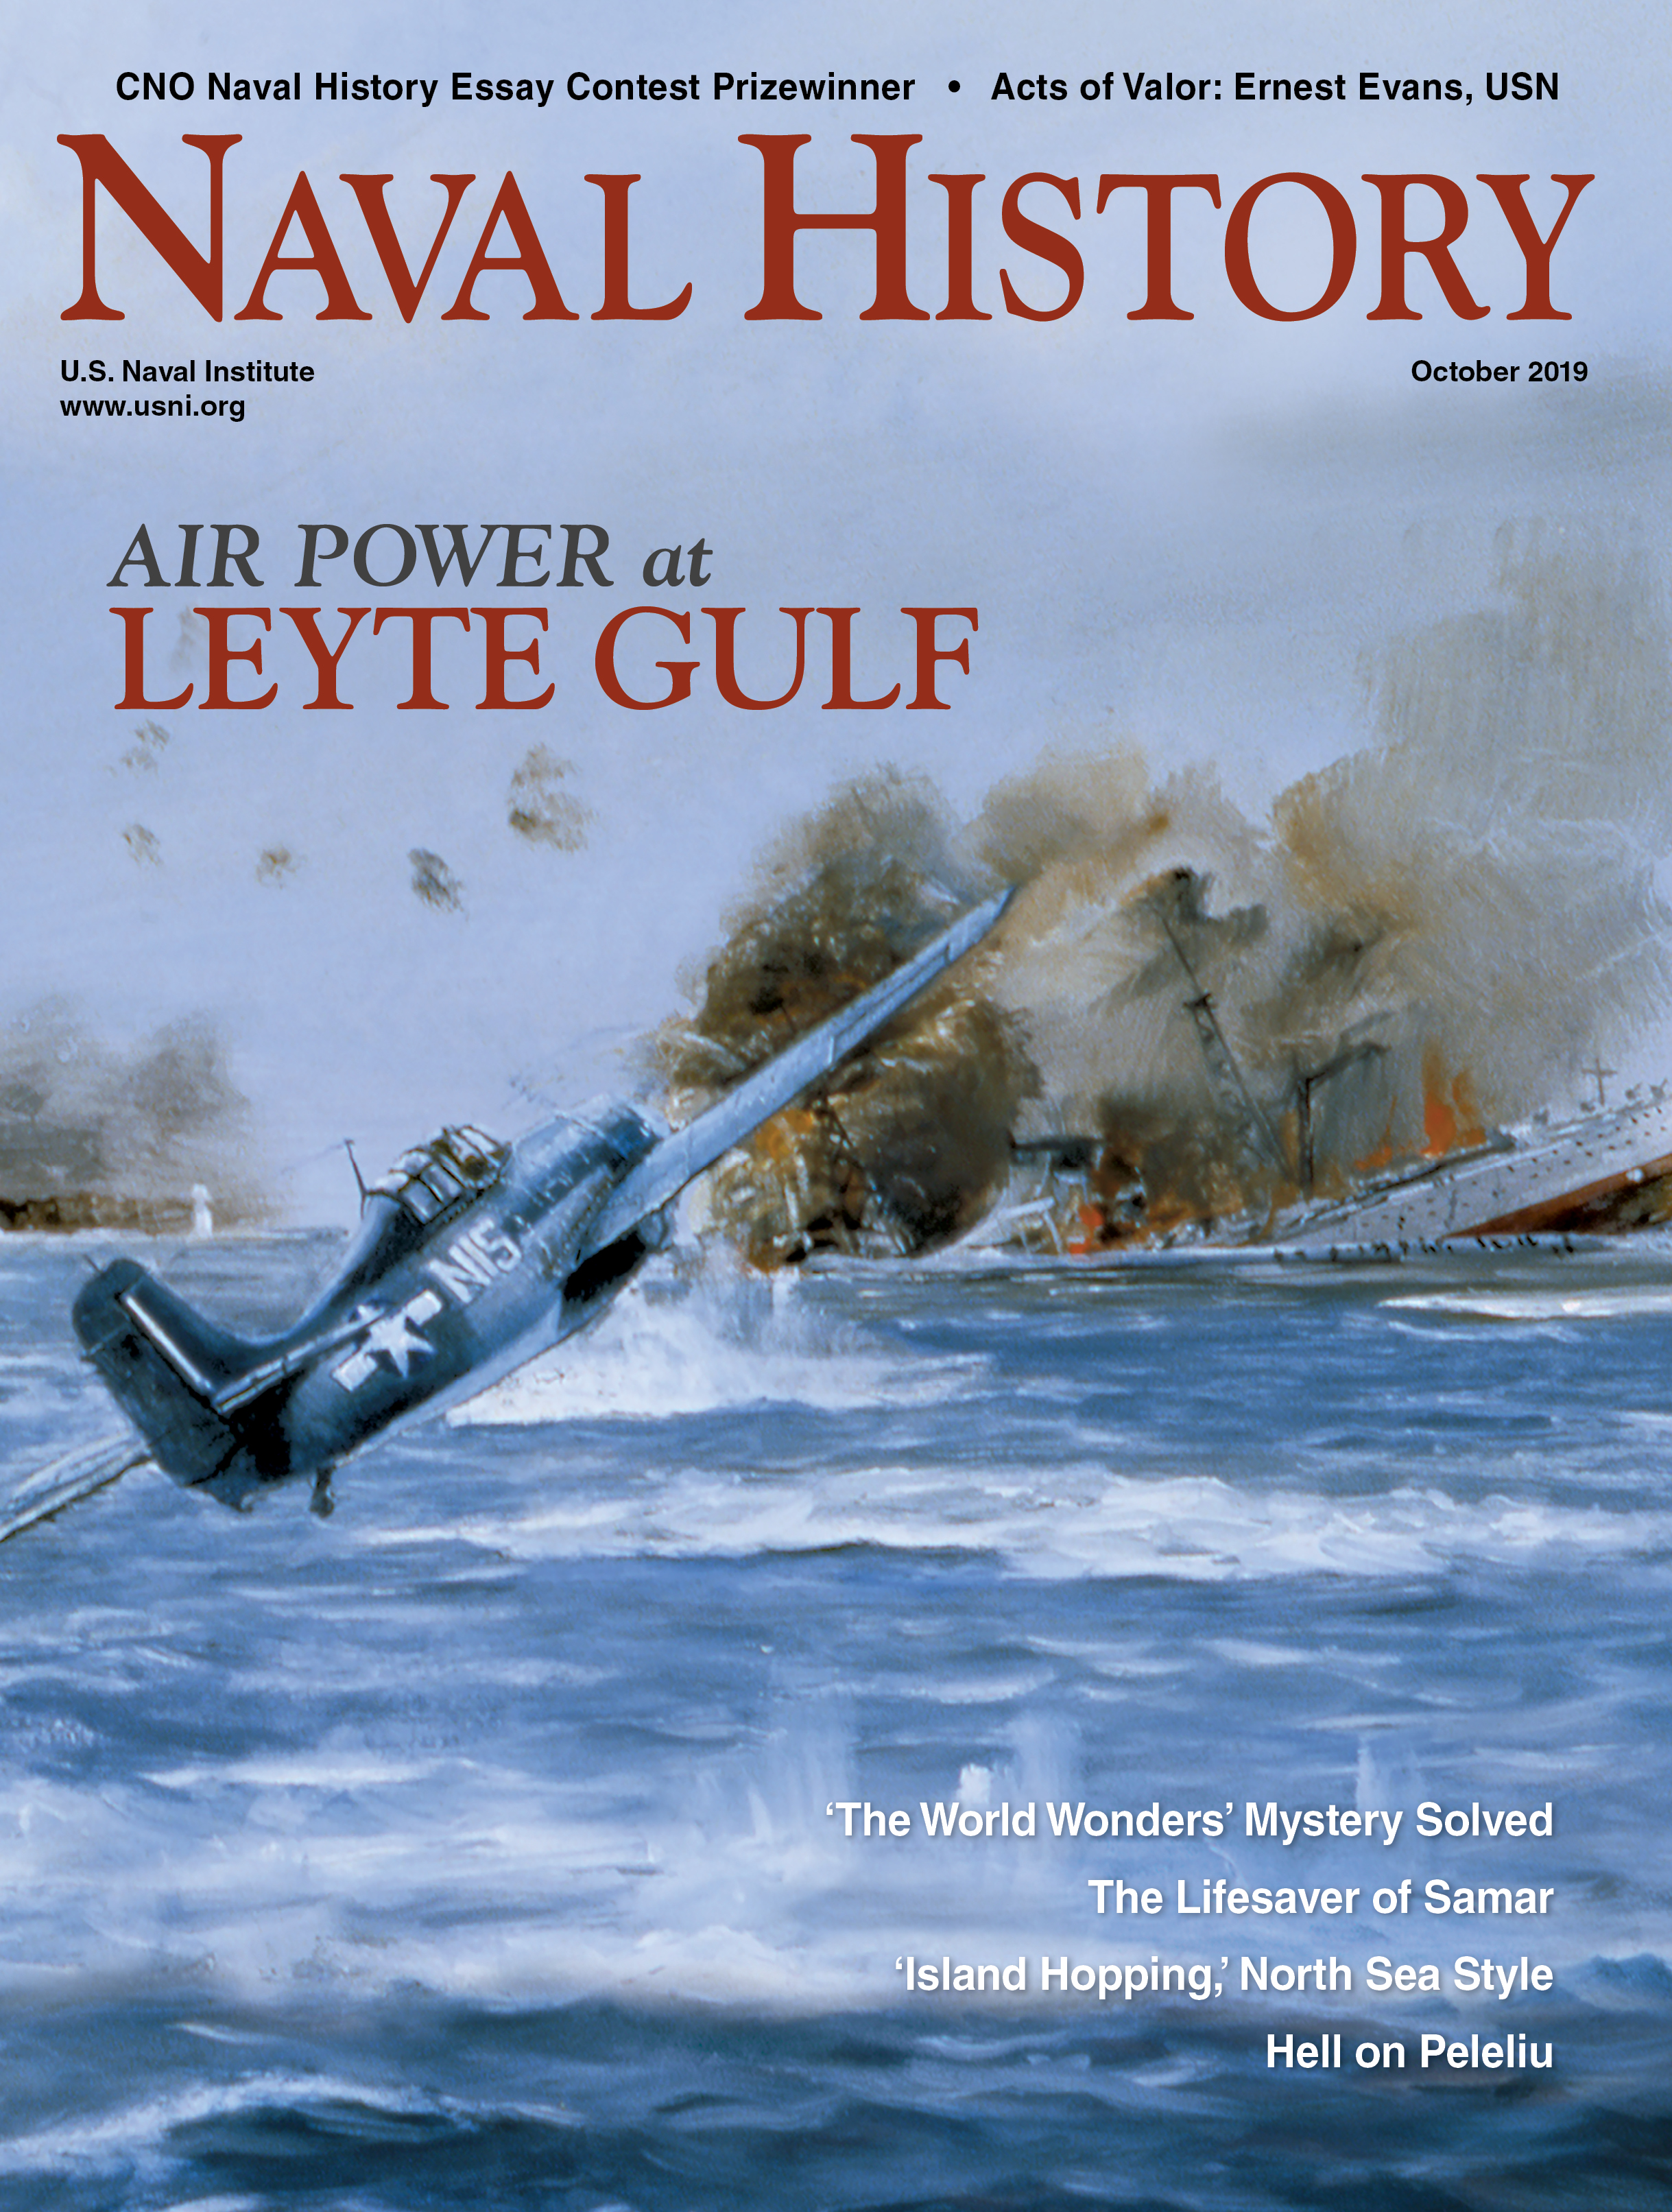 Naval History Magazine - October 2019 Volume 34, Number 5 Cover